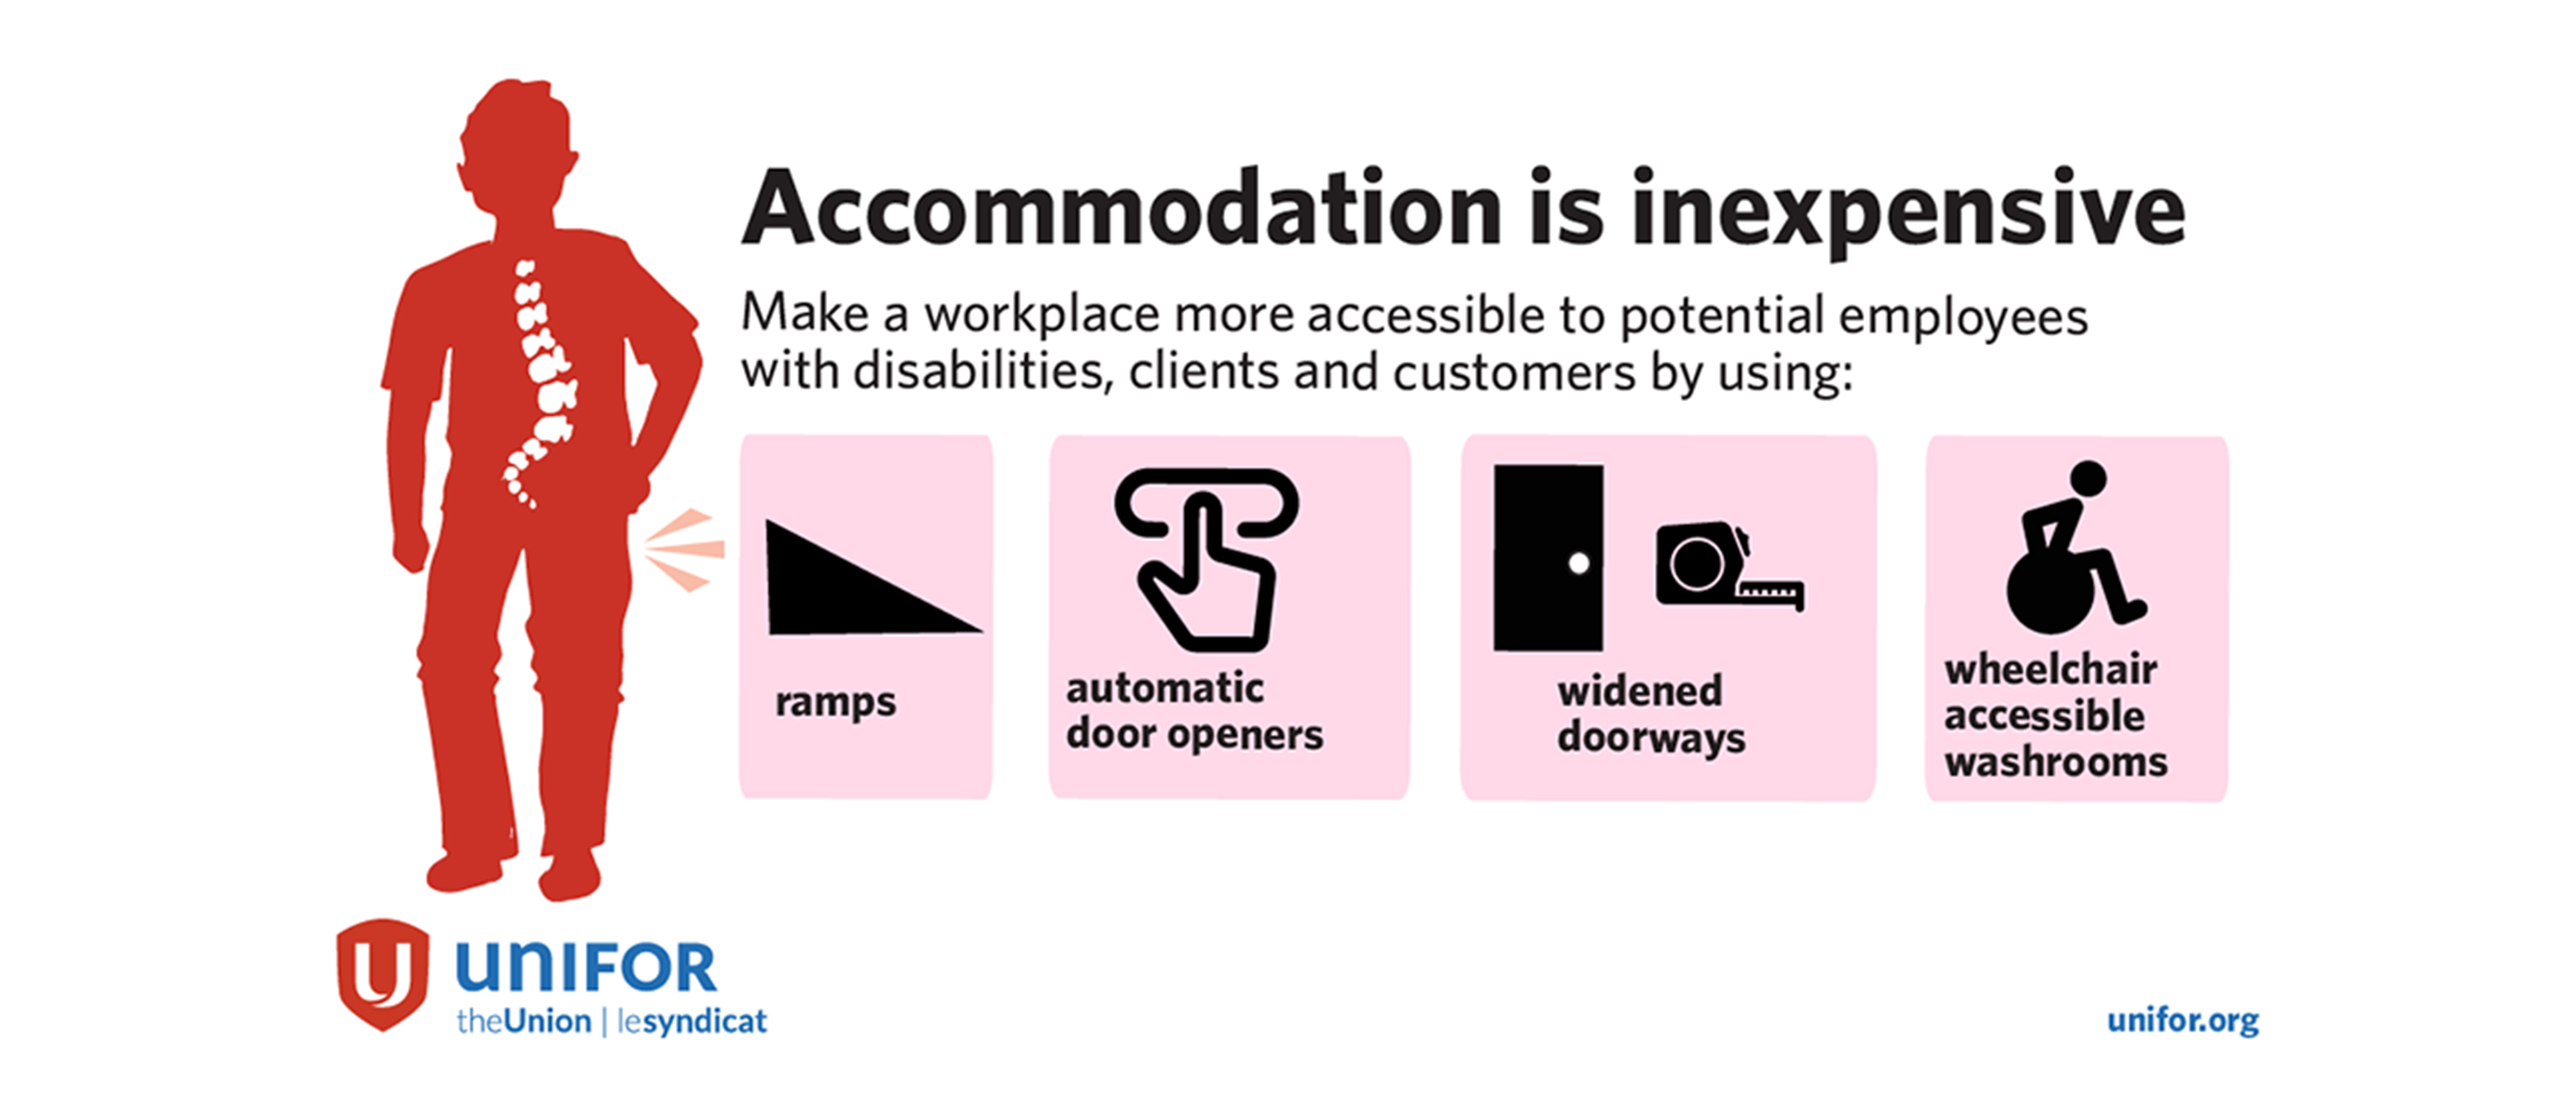 infographic detailing how disability accommodation is not expensive